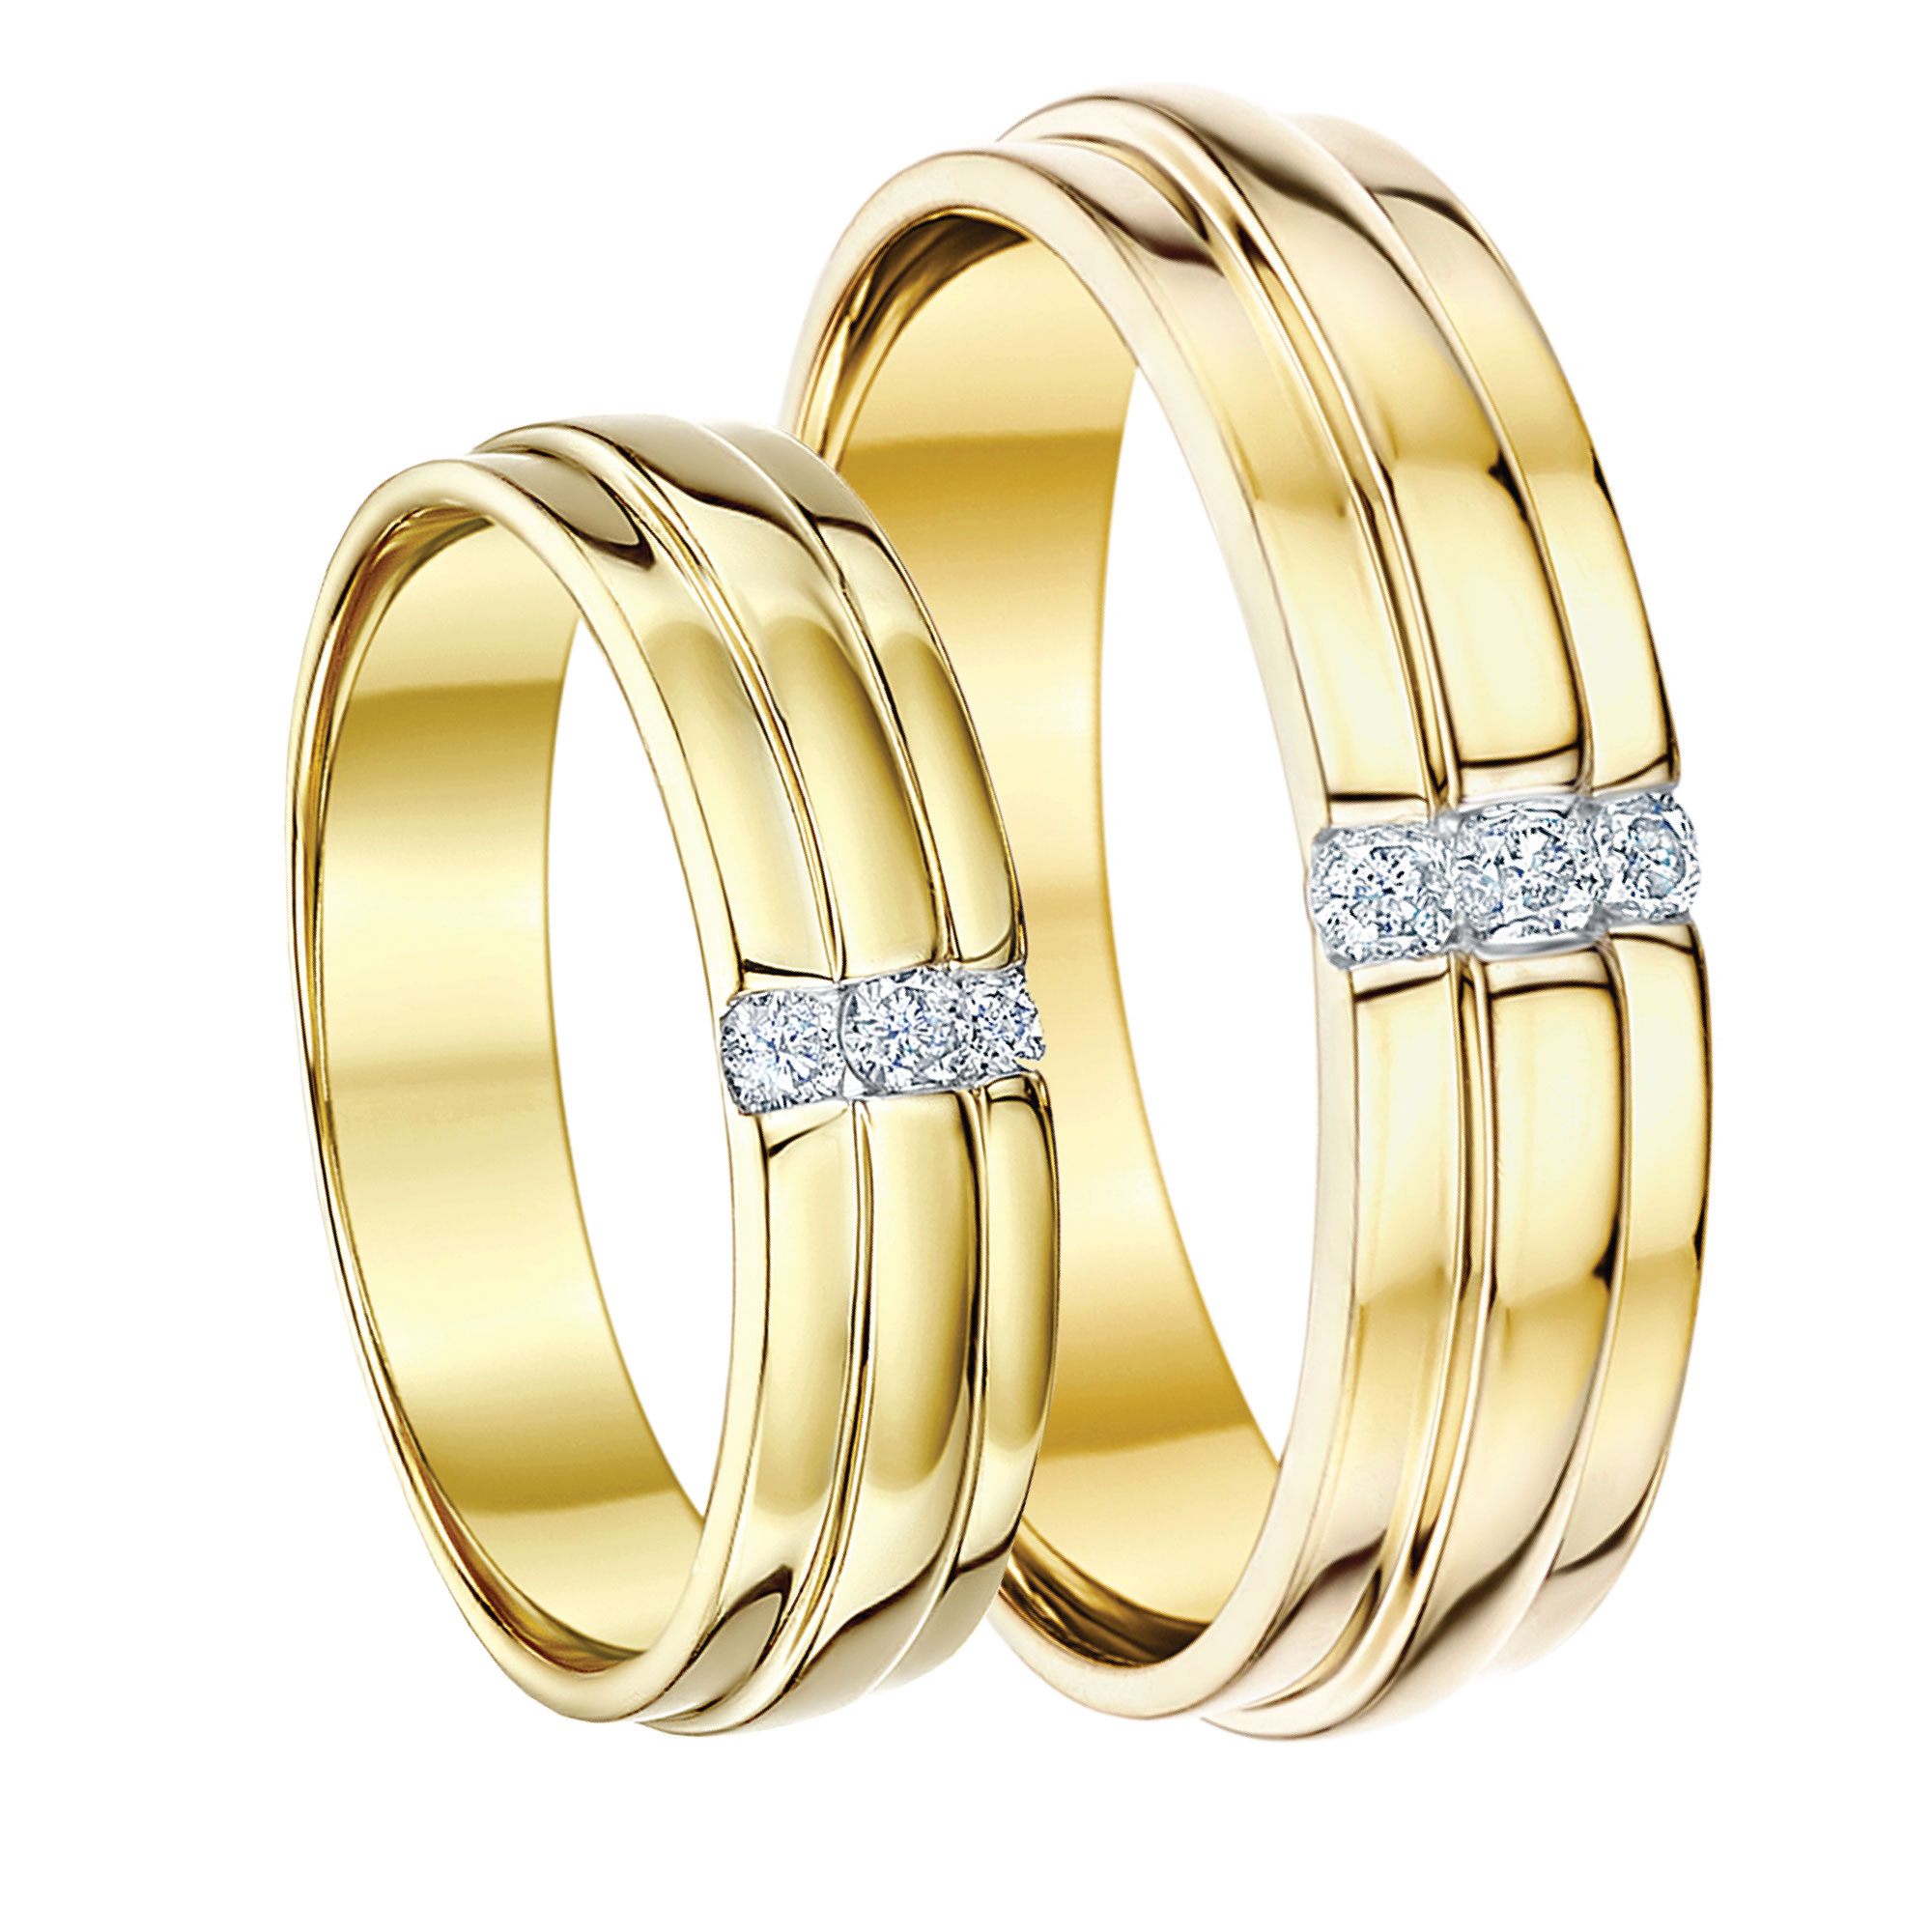 wedding weddceremycom wearing ideas thick on ring engagement band bands groom u rings bee for gold or bride hands thin